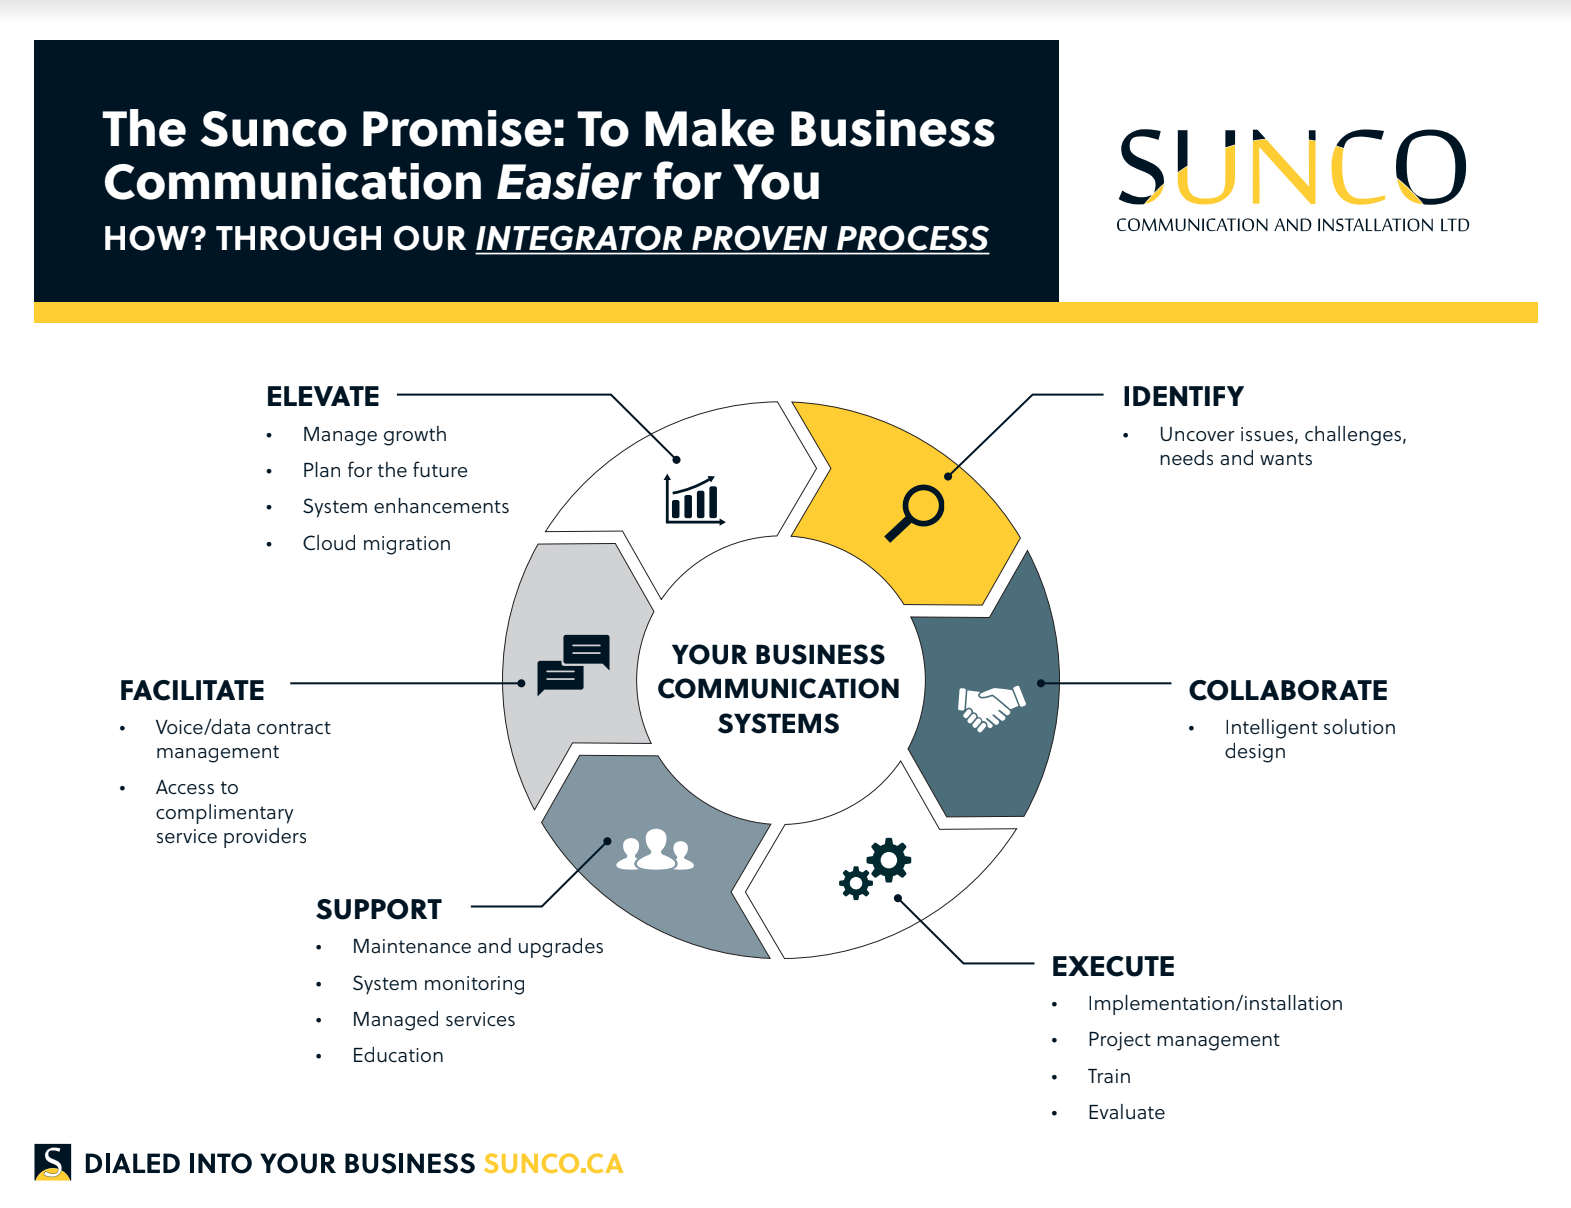 Chart of Sunco's Integrator Proven Process that drives business internet edmonton